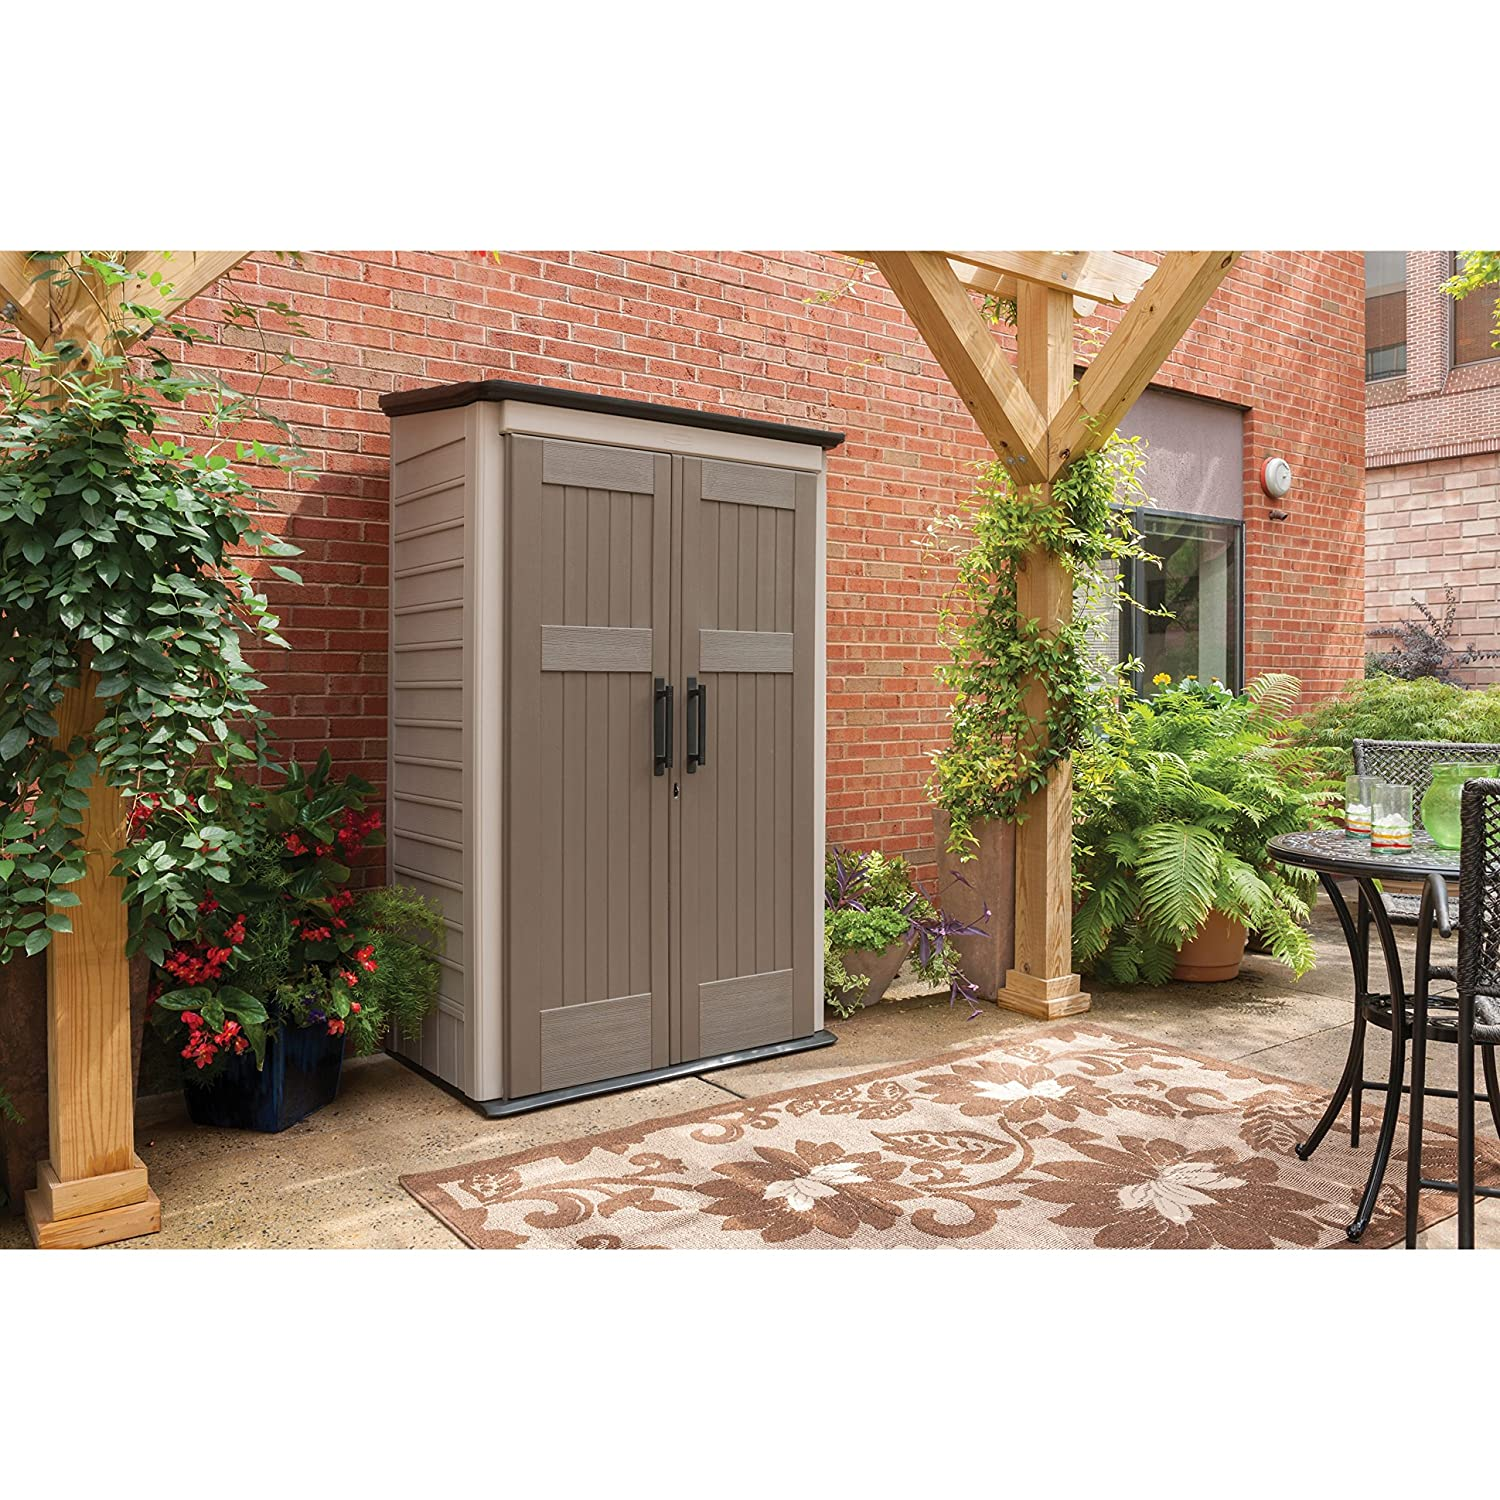 Rubbermaid Plastic Vertical Outdoor Storage Shed 52 cu ft